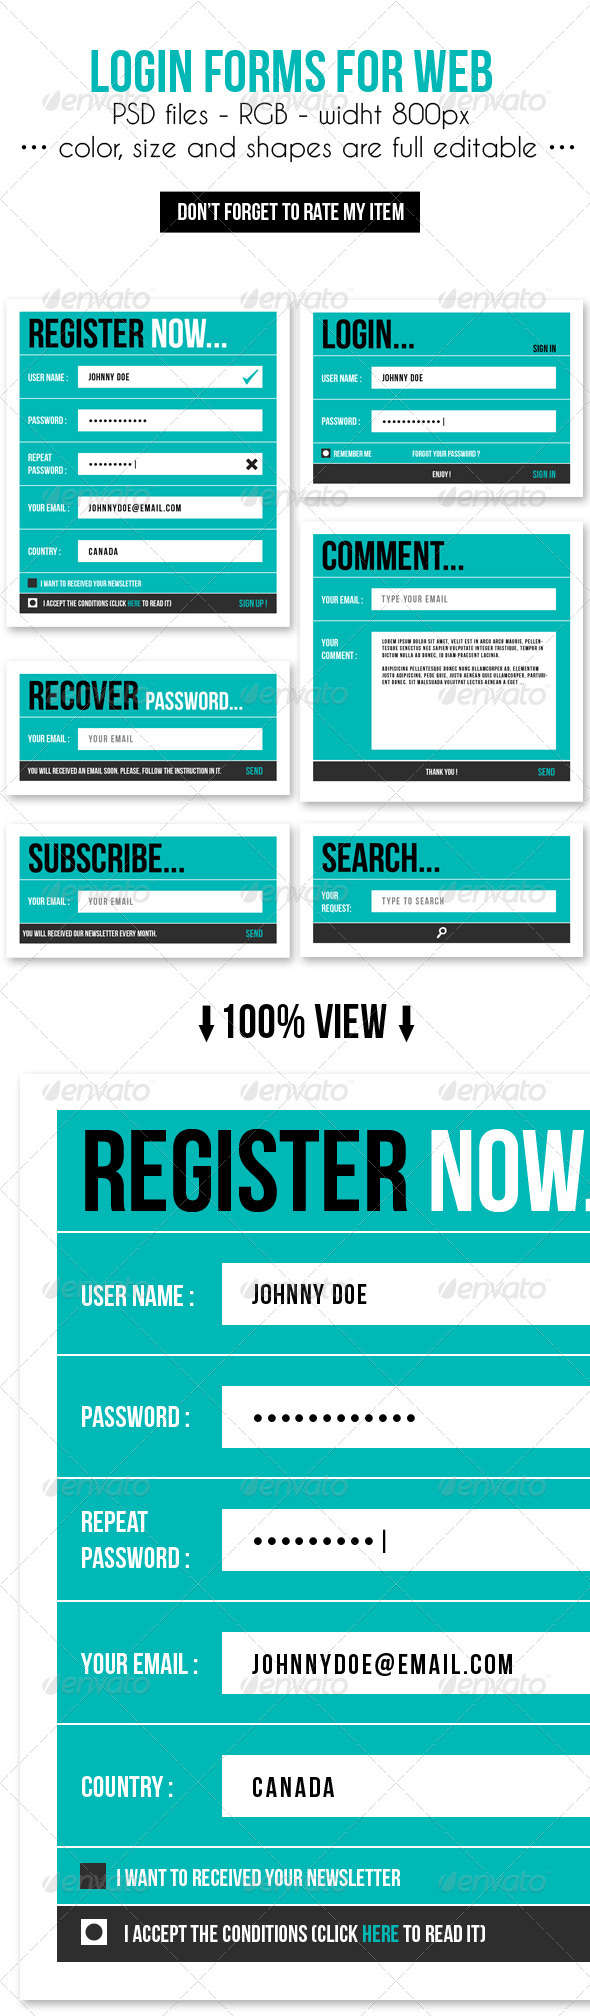 GraphicRiver Login Forms for Web 3896089